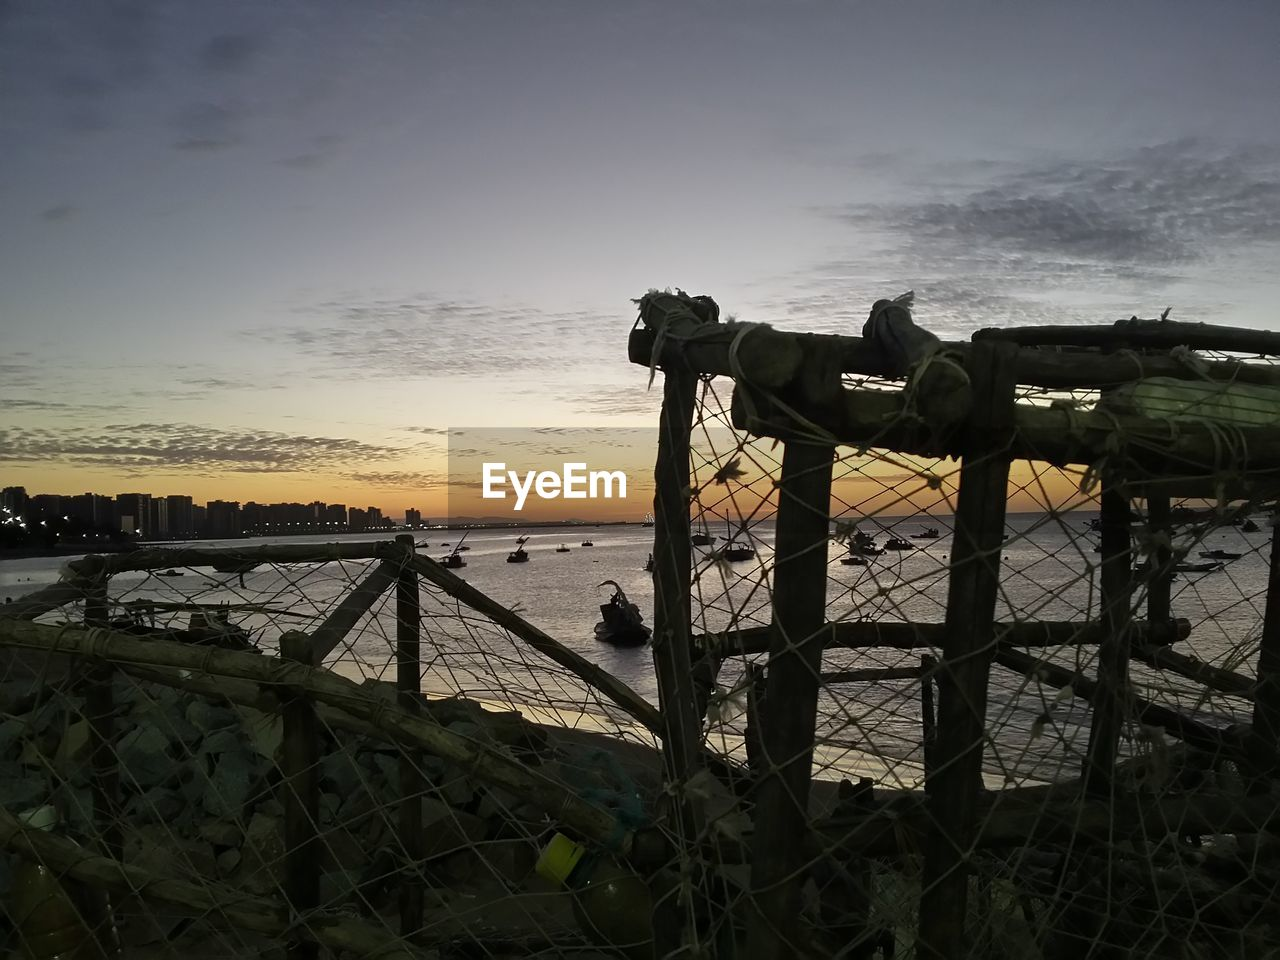 sunset, sea, sky, outdoors, water, cloud - sky, no people, horizon over water, nature, beauty in nature, coin-operated binoculars, day